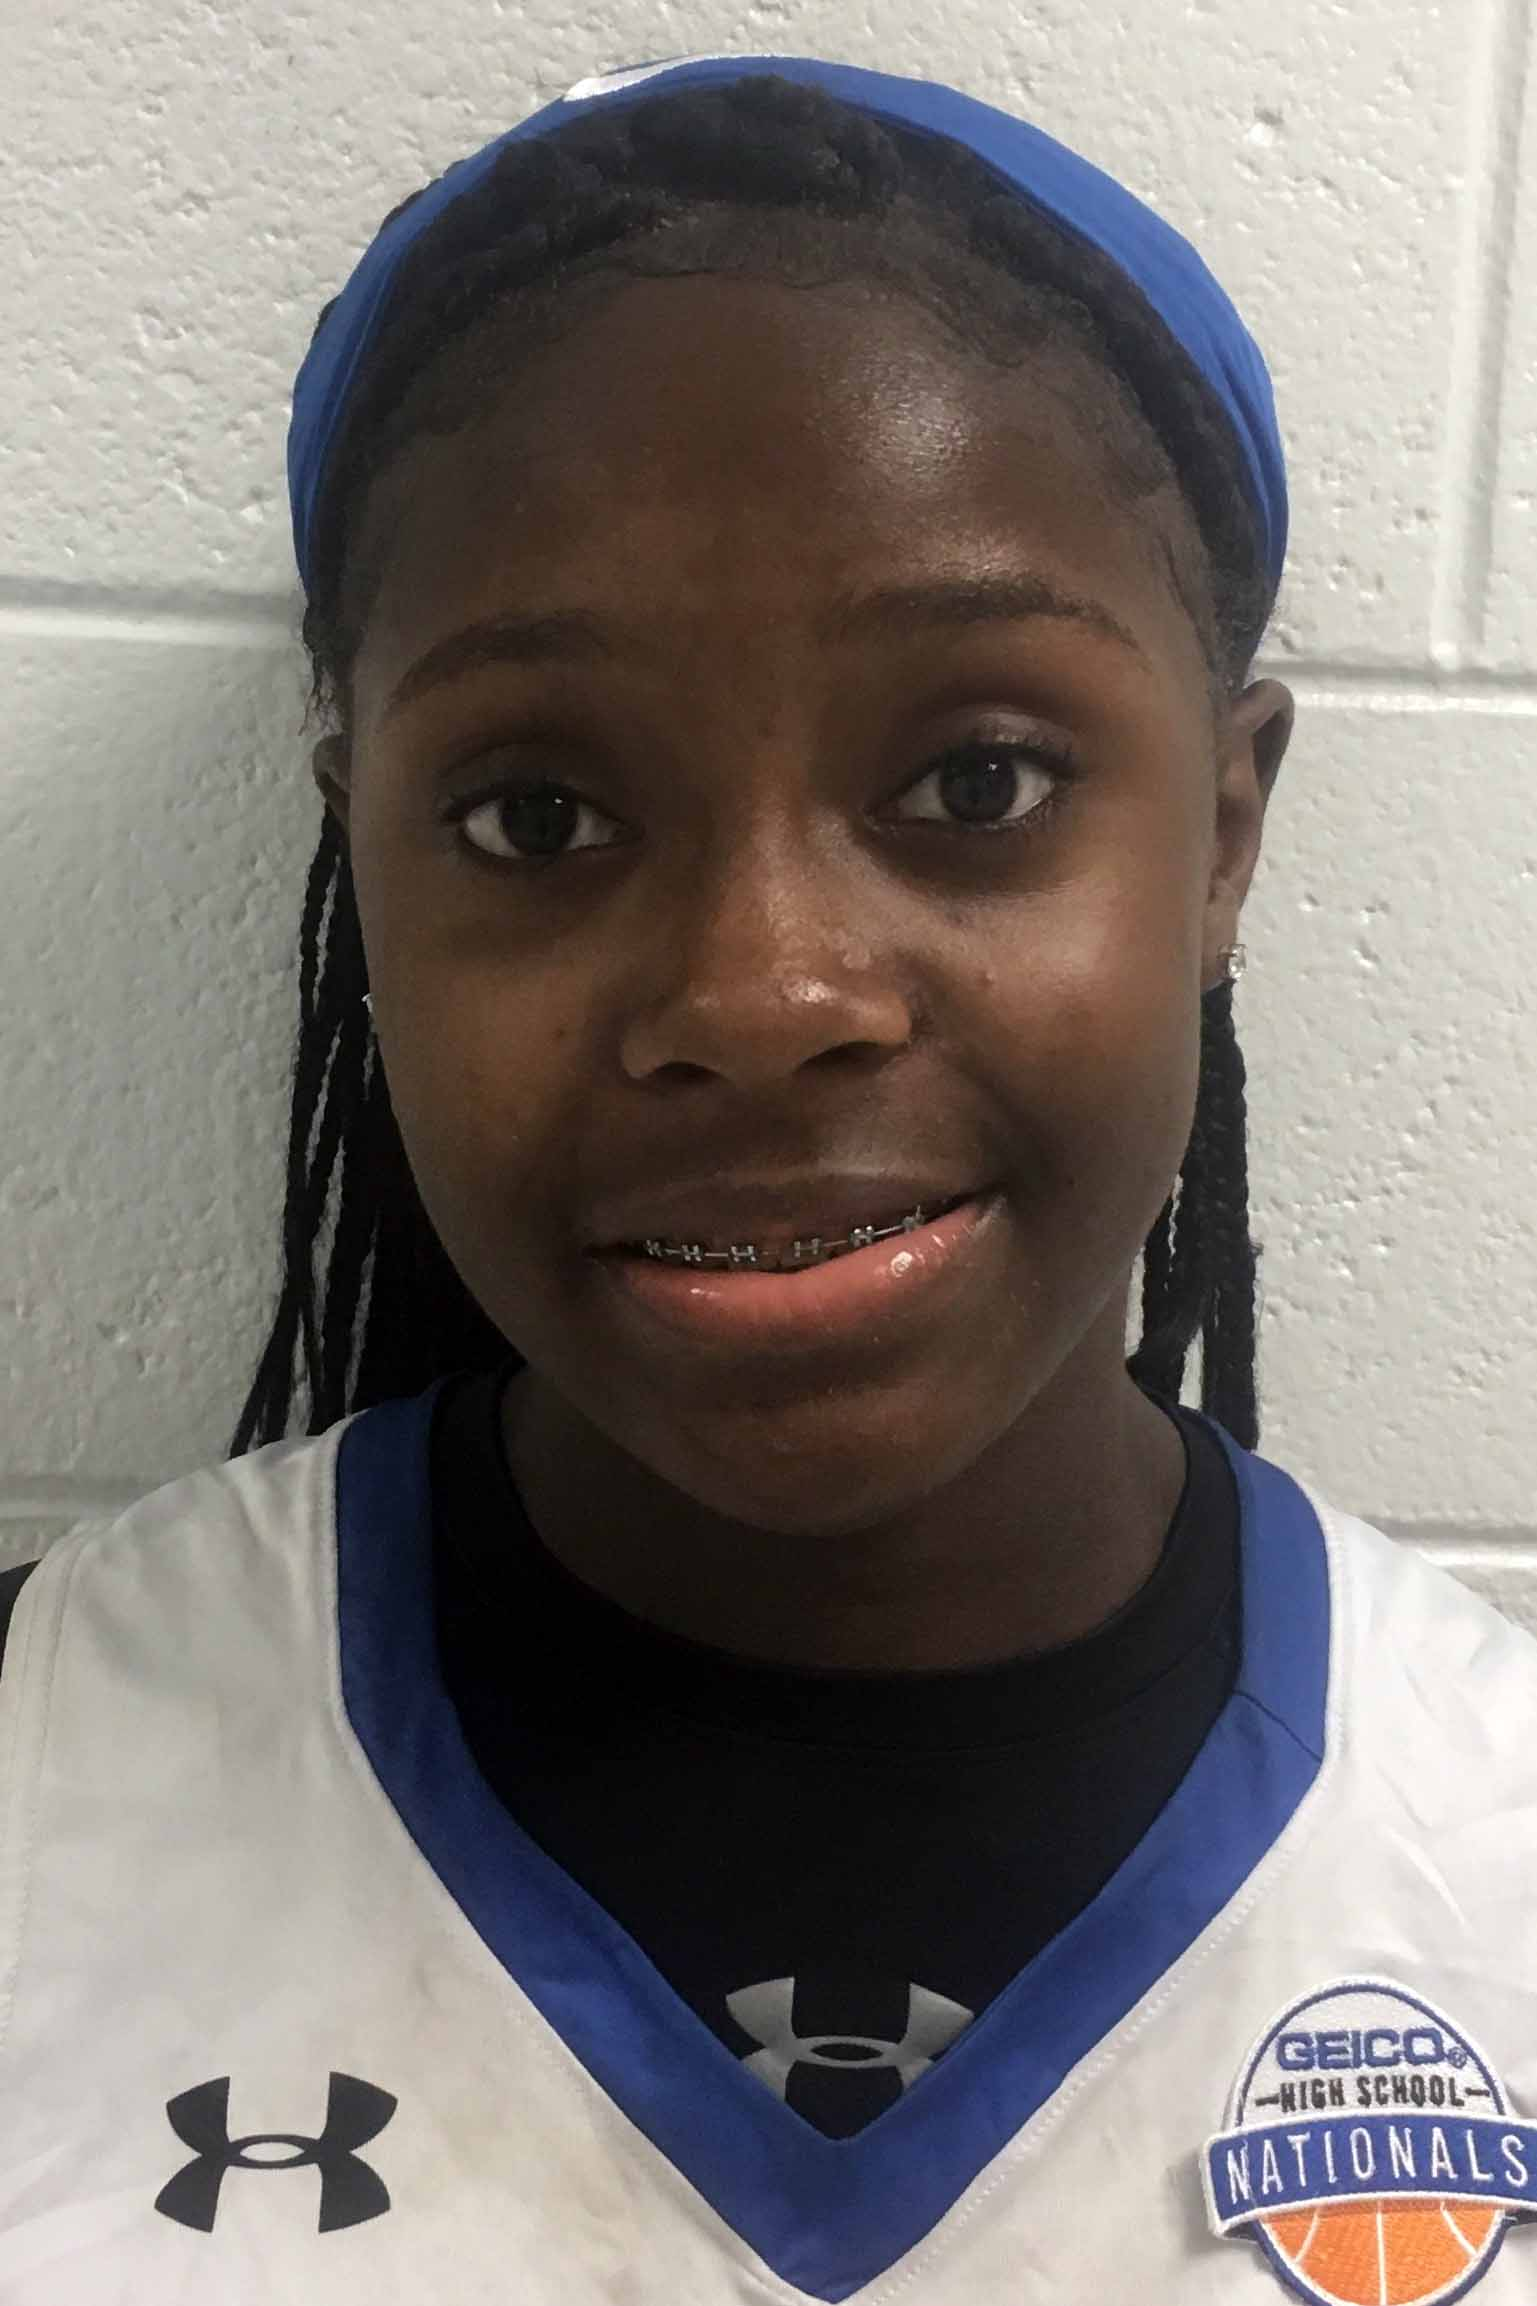 Basketball Profile 2021 School Raven Girls